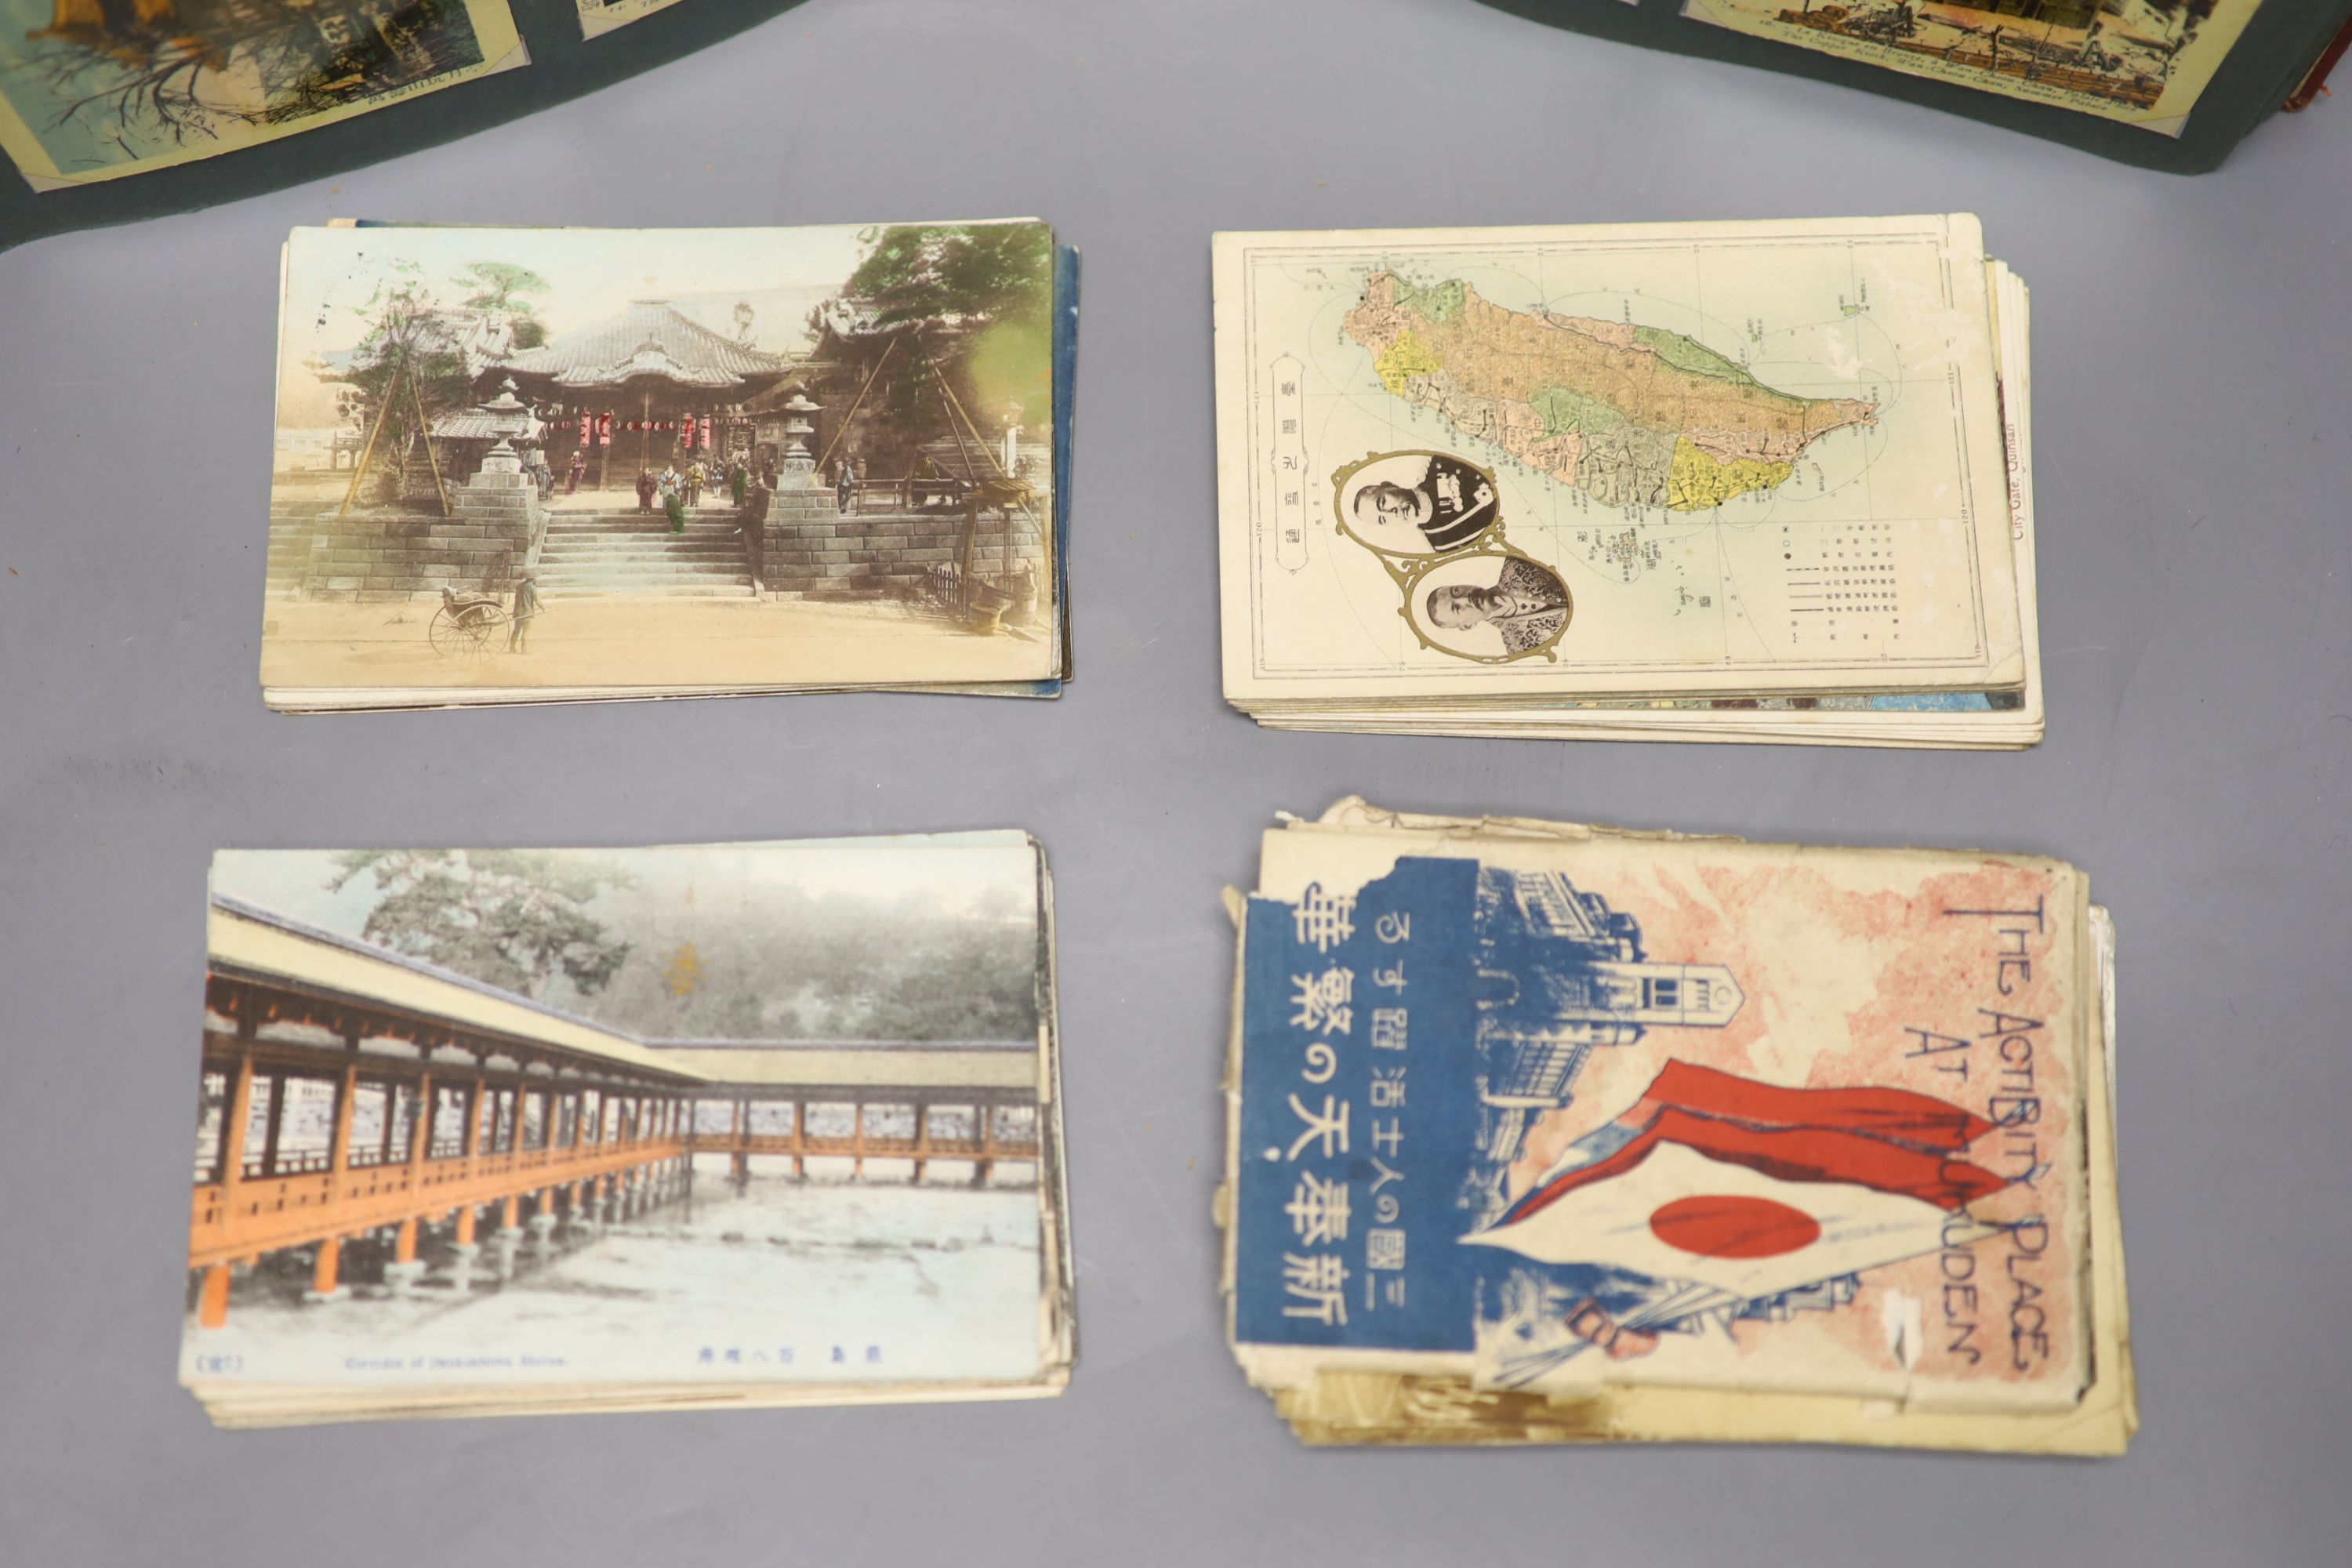 China, Japan and S.E Asia, early 20th century - an album of postcards, including views of the - Image 5 of 6